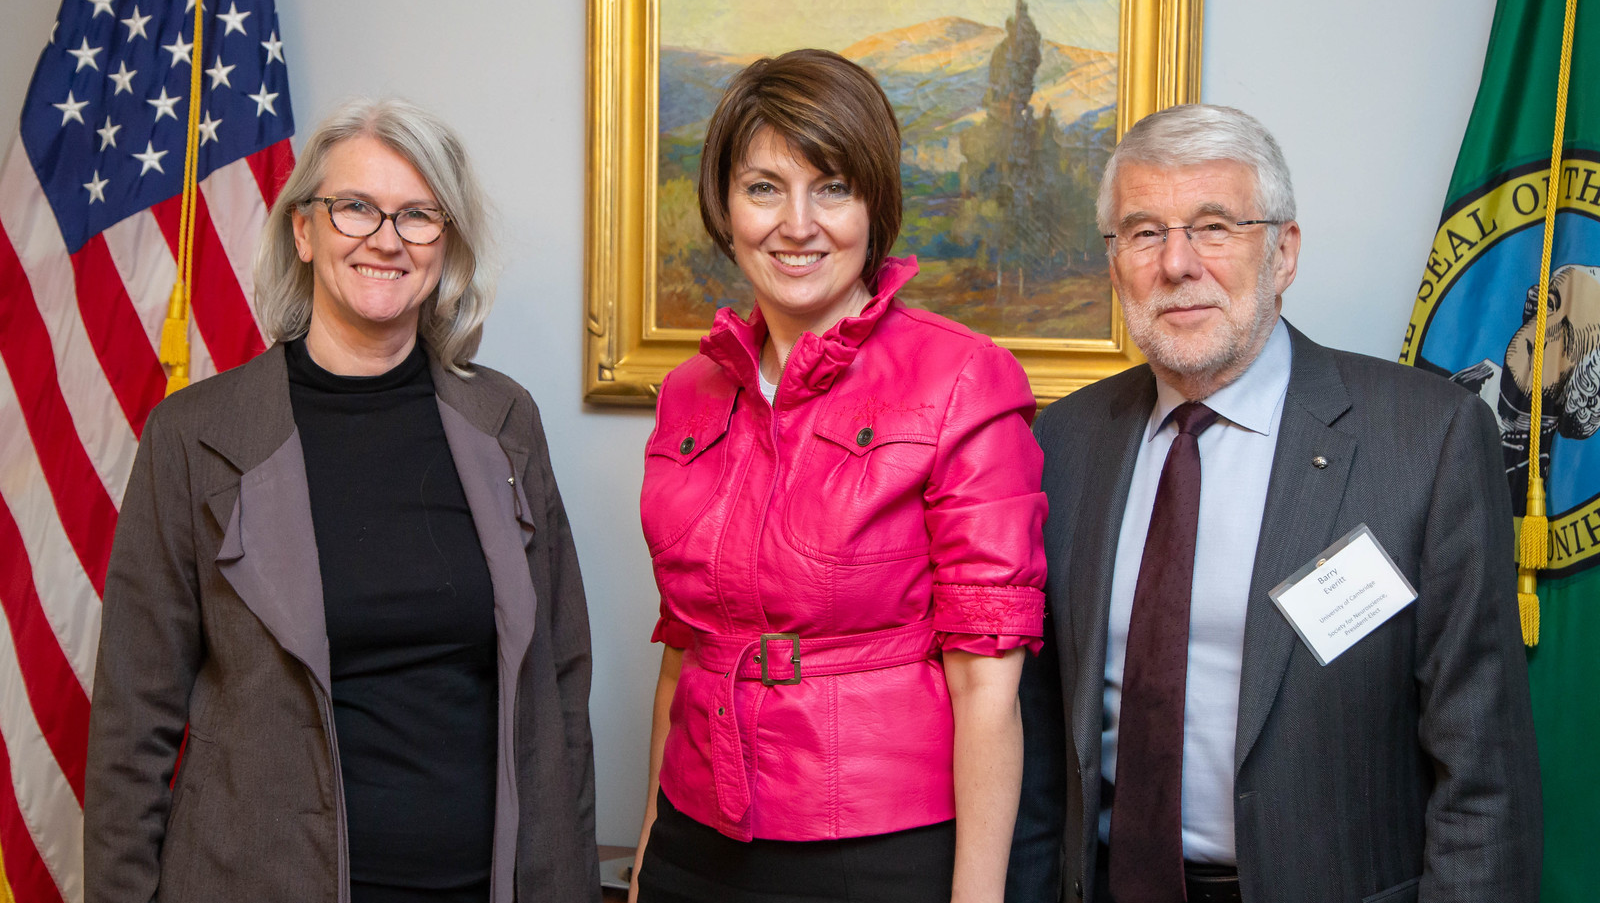 SfN President Diane Lipscombe (left), Rep. Cathy McMorris Rodgers (WA), and SfN President-Elect Barry Everitt meet during 2019 Capitol Hill Day.